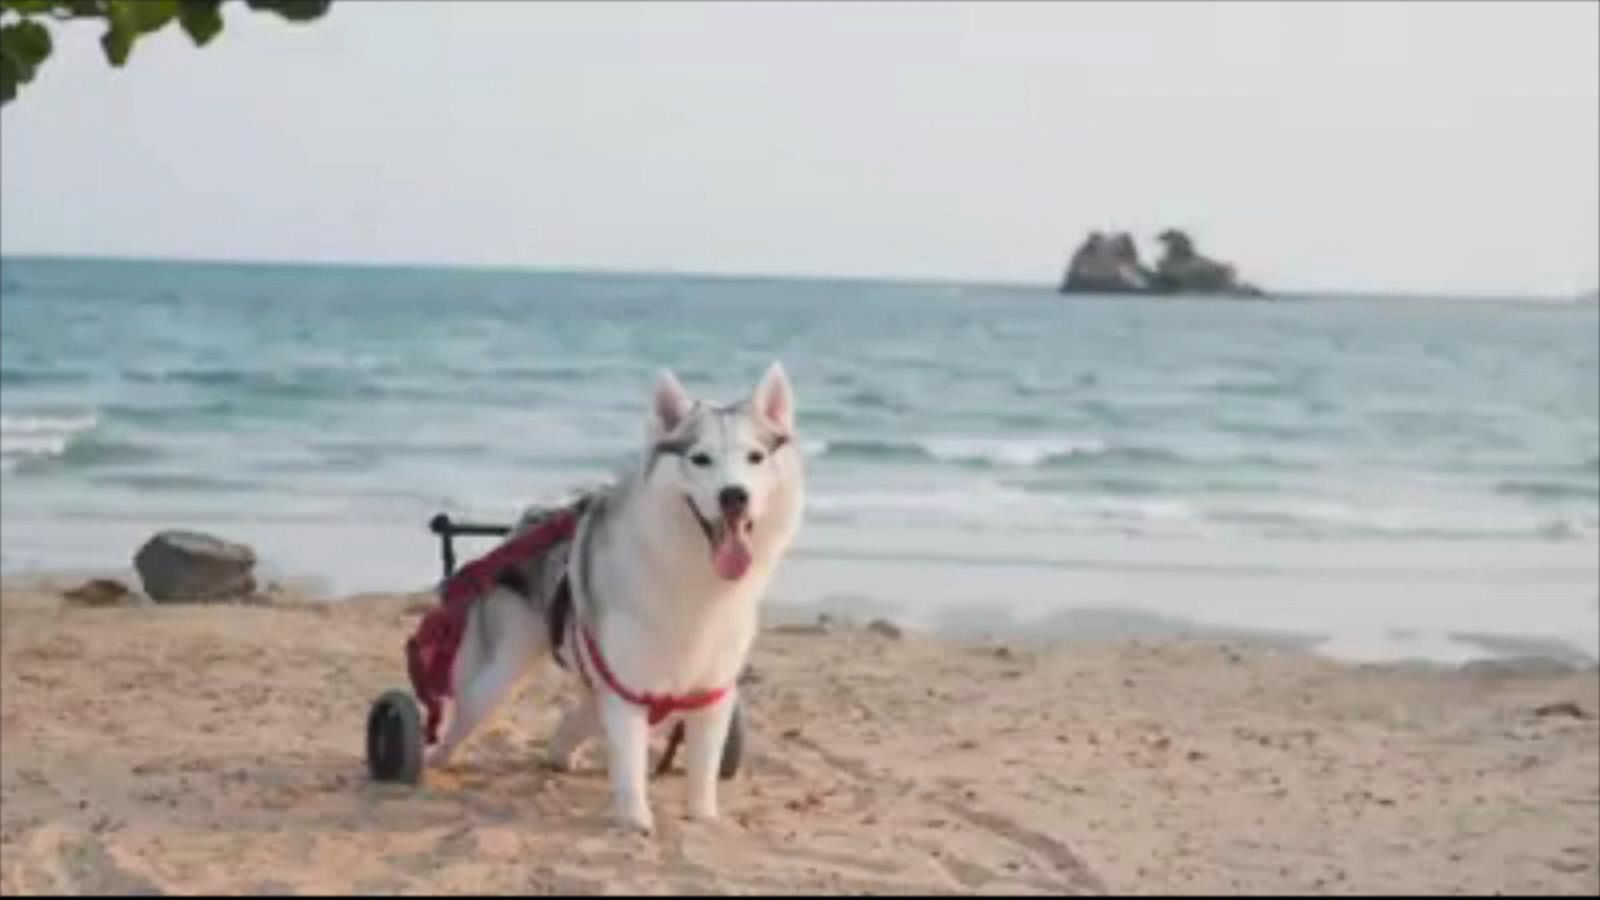 Maya, a 3-year-old Siberian husky, was born without paws thanks to a genetic disorder. Still, thanks to a new wheelchair and his owner Kitiya Boonyung, Maya has a second chance.